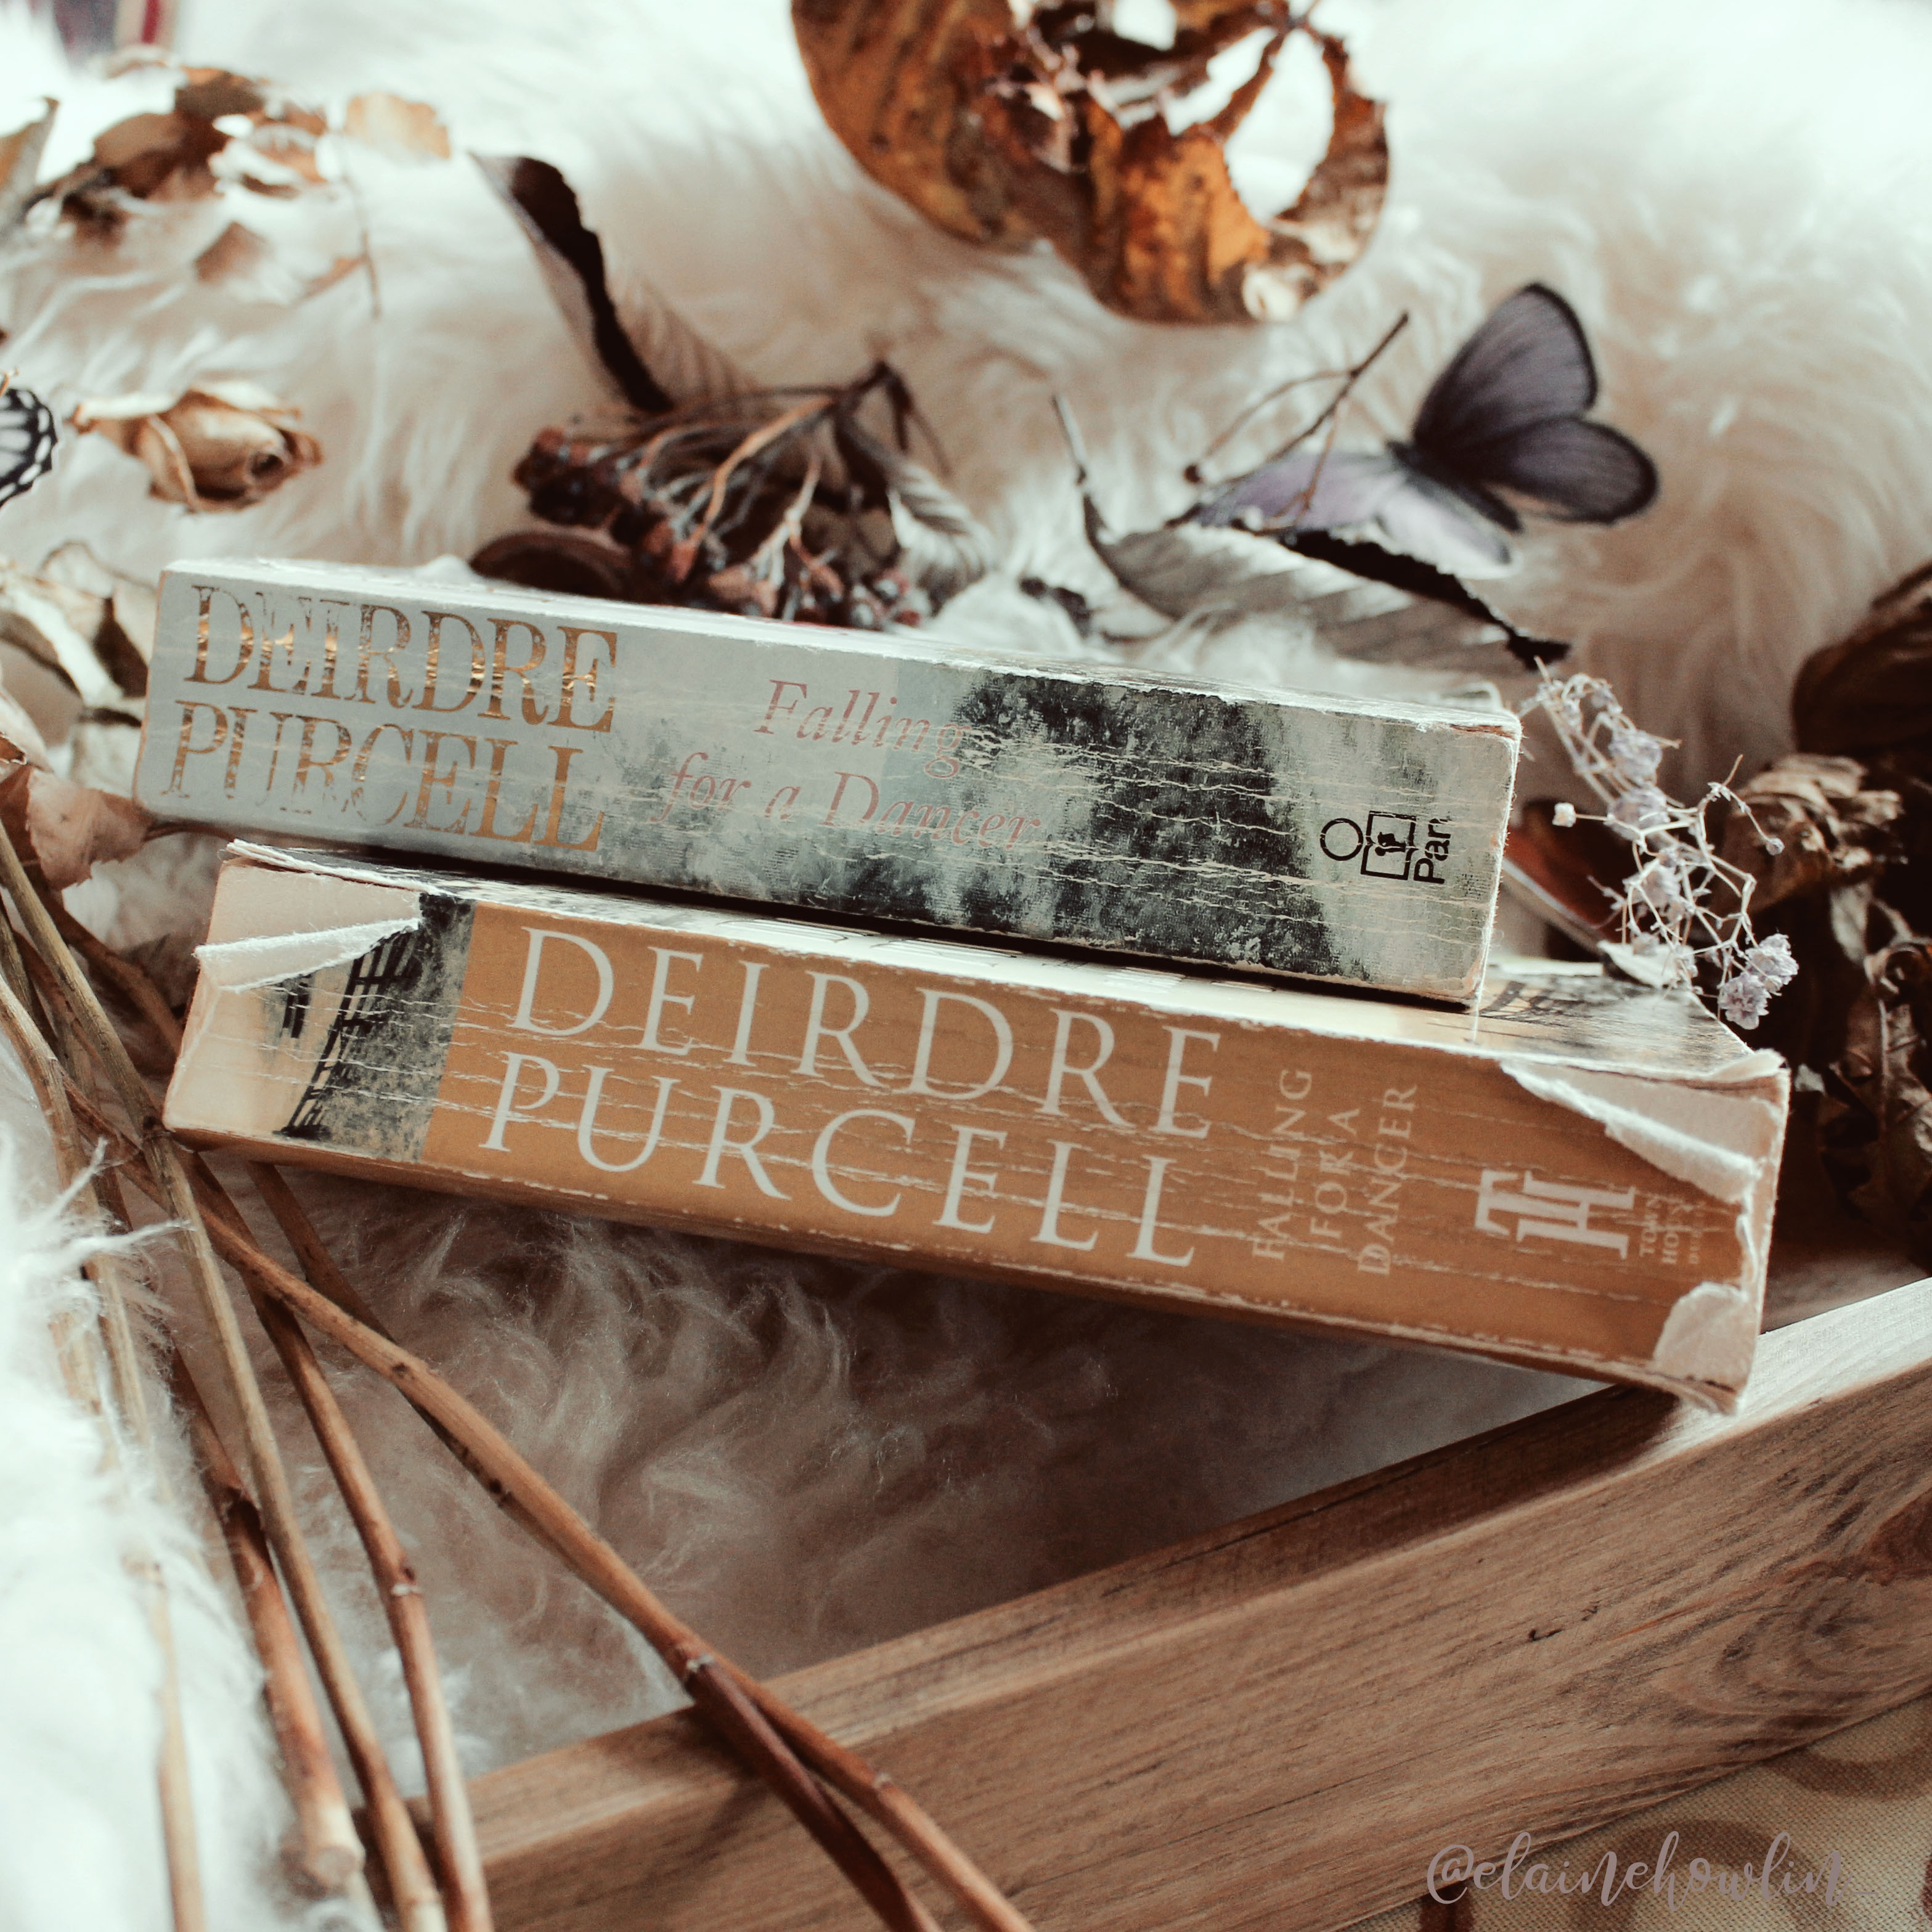 Falling For A Dancer by Deirdre Purcell x2 1